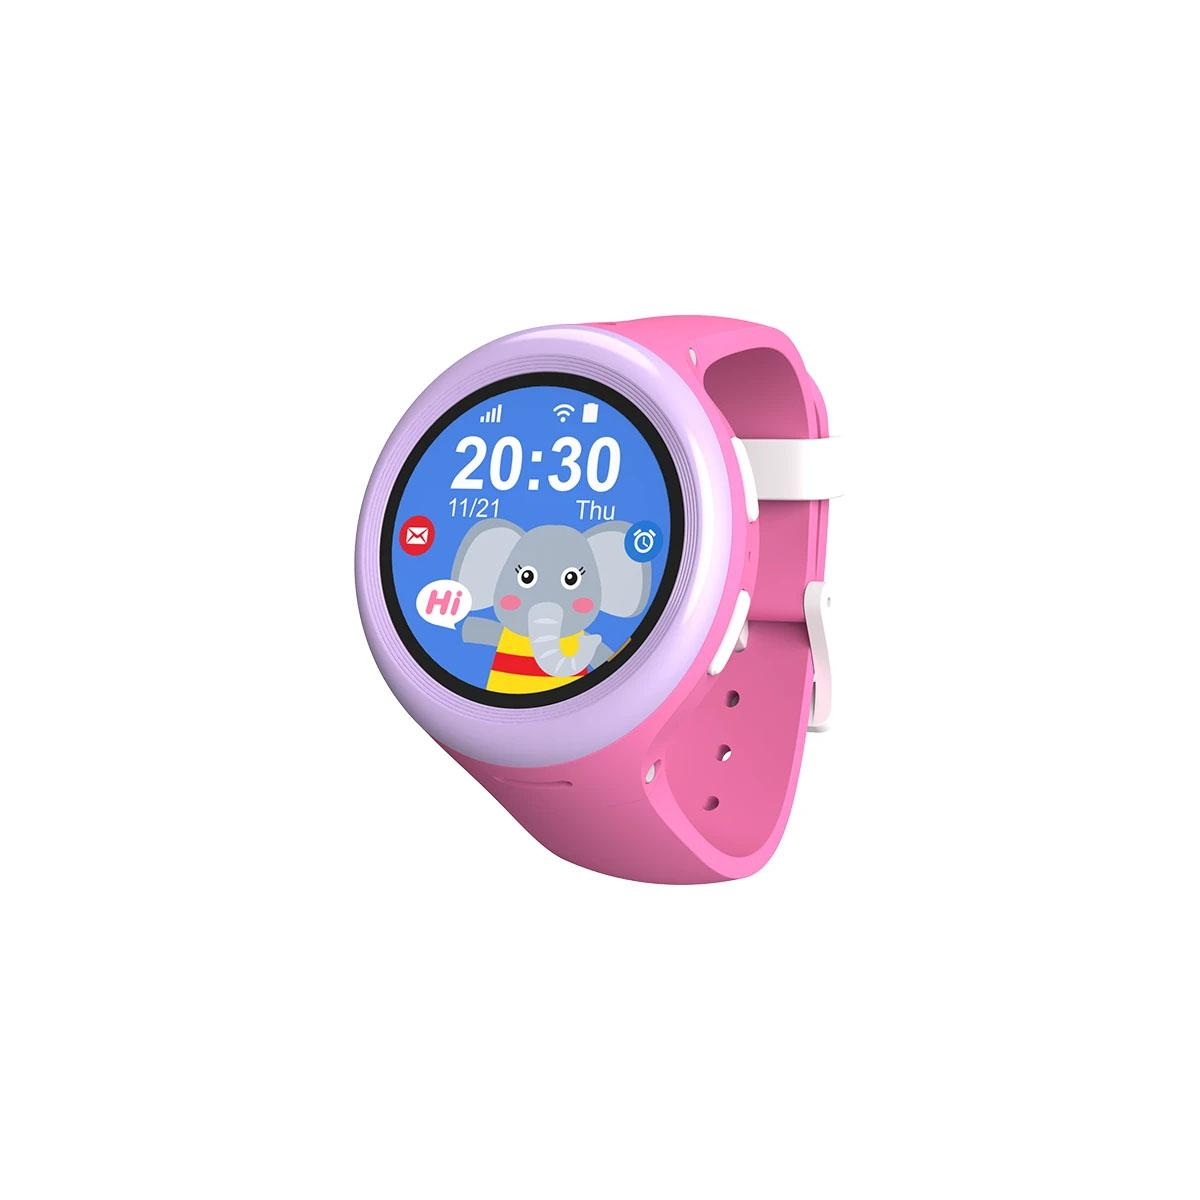 Myfirst Fone RealTime GPS Kids Tracker - Pink